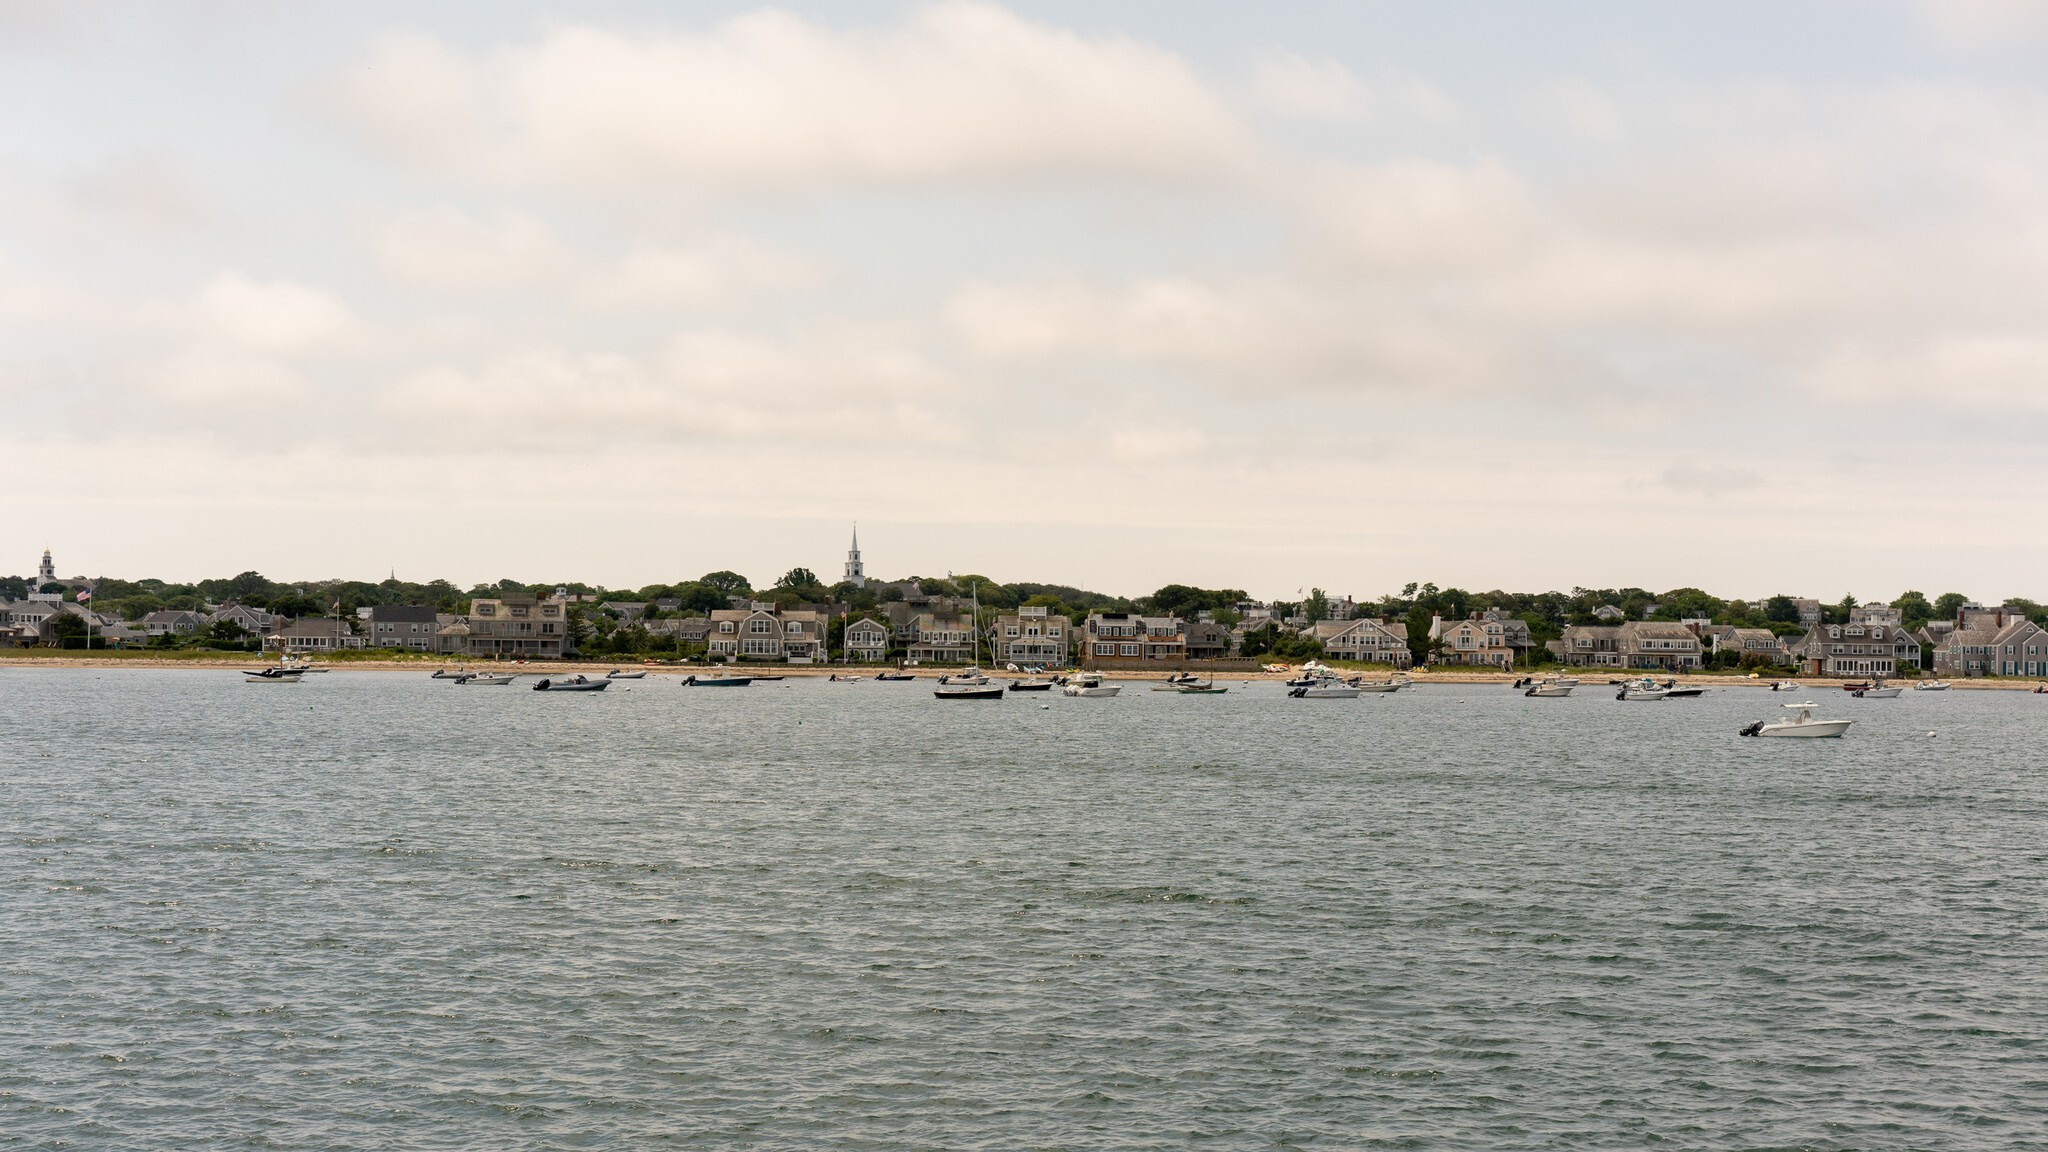 An image of Nantucket from afar, across the water